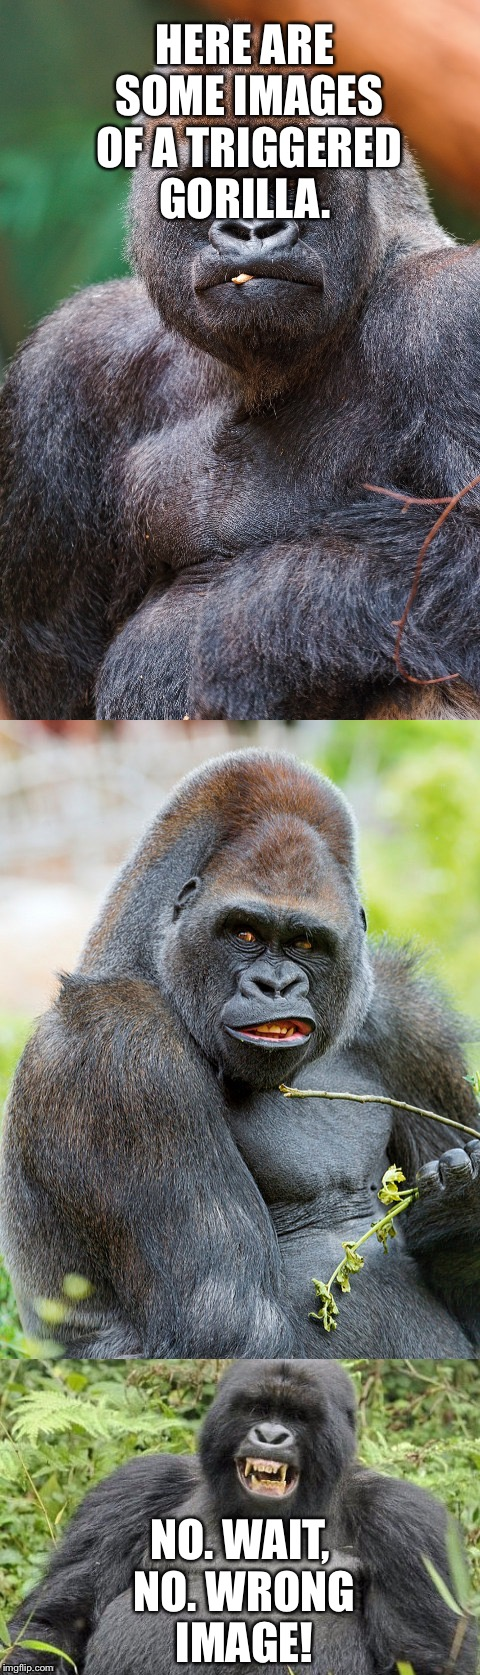 And now, Male gorillas in their natural habitat. | HERE ARE SOME IMAGES OF A TRIGGERED GORILLA. NO. WAIT, NO. WRONG IMAGE! | image tagged in wrong,image,memes | made w/ Imgflip meme maker